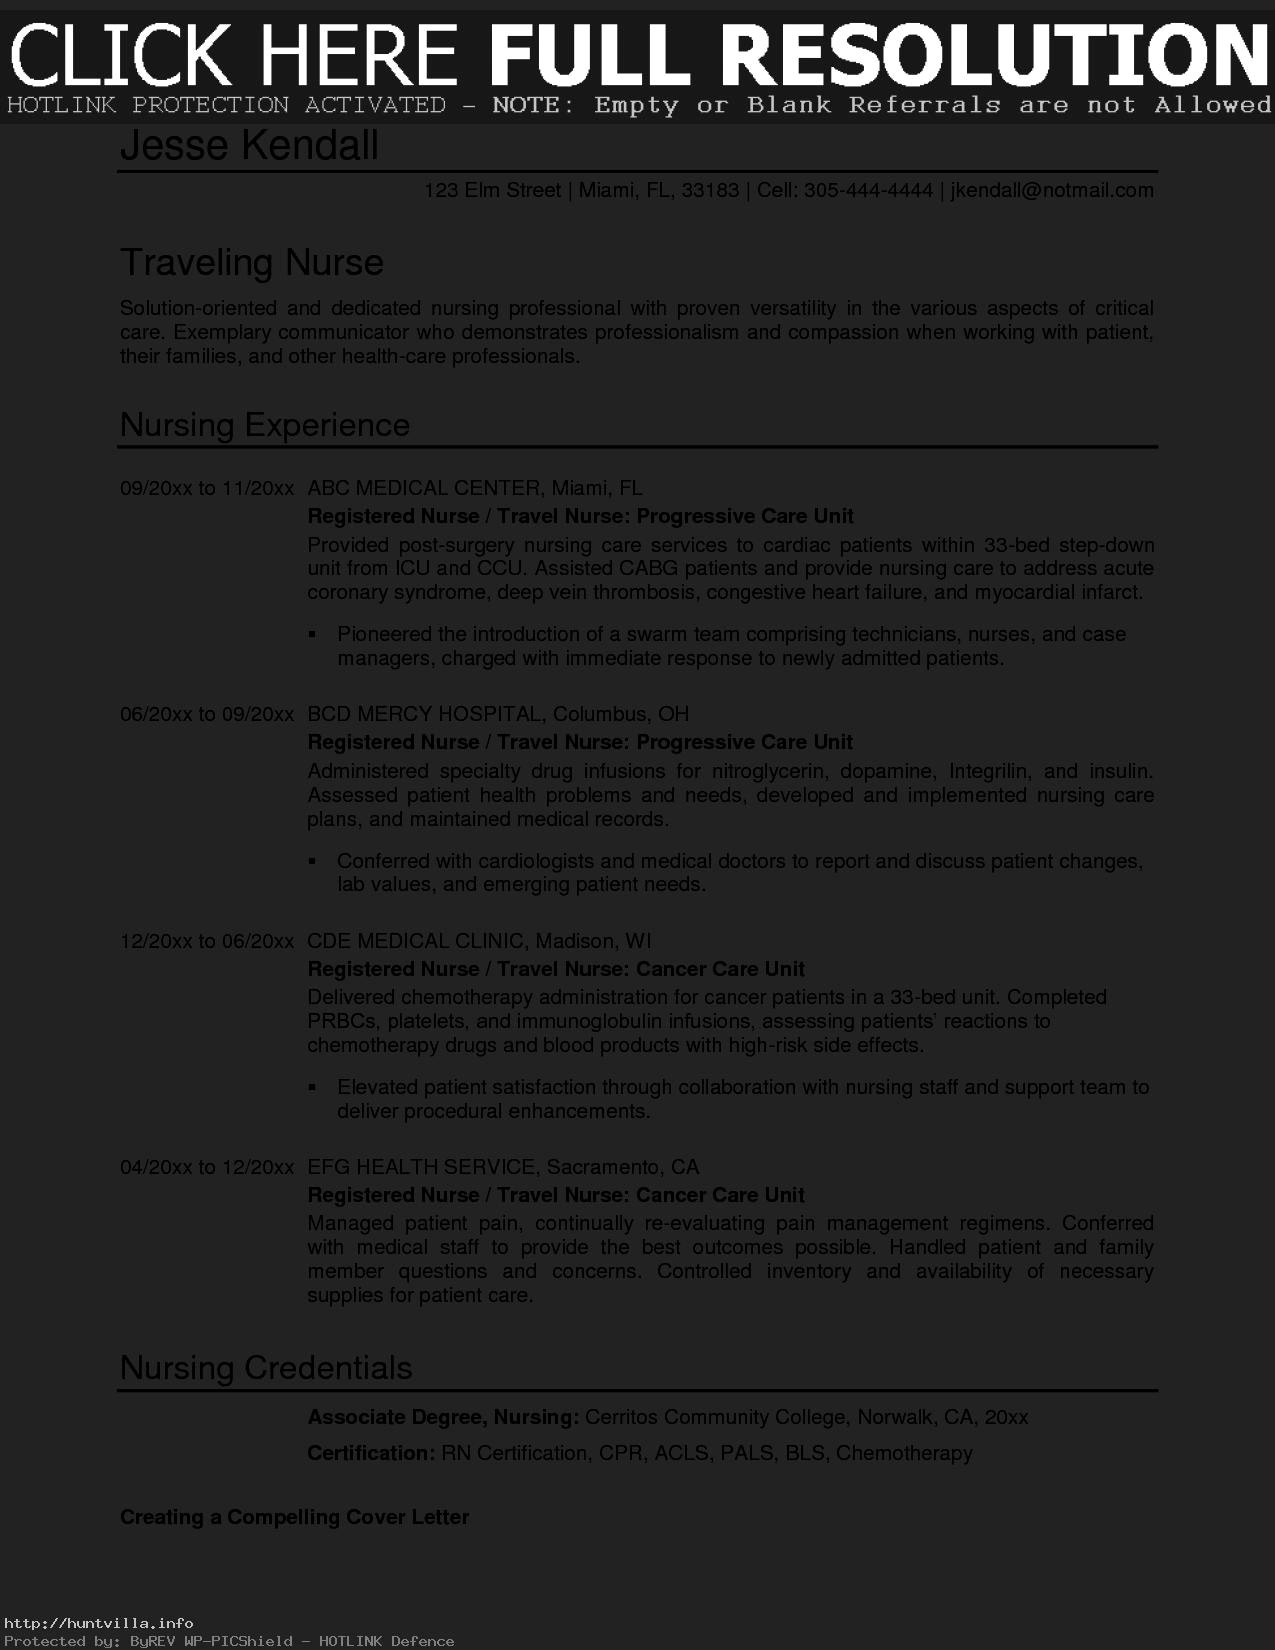 Home Care Nursing Resume - Progressive Care Nursing Certification Inspirational Best Rn Bsn